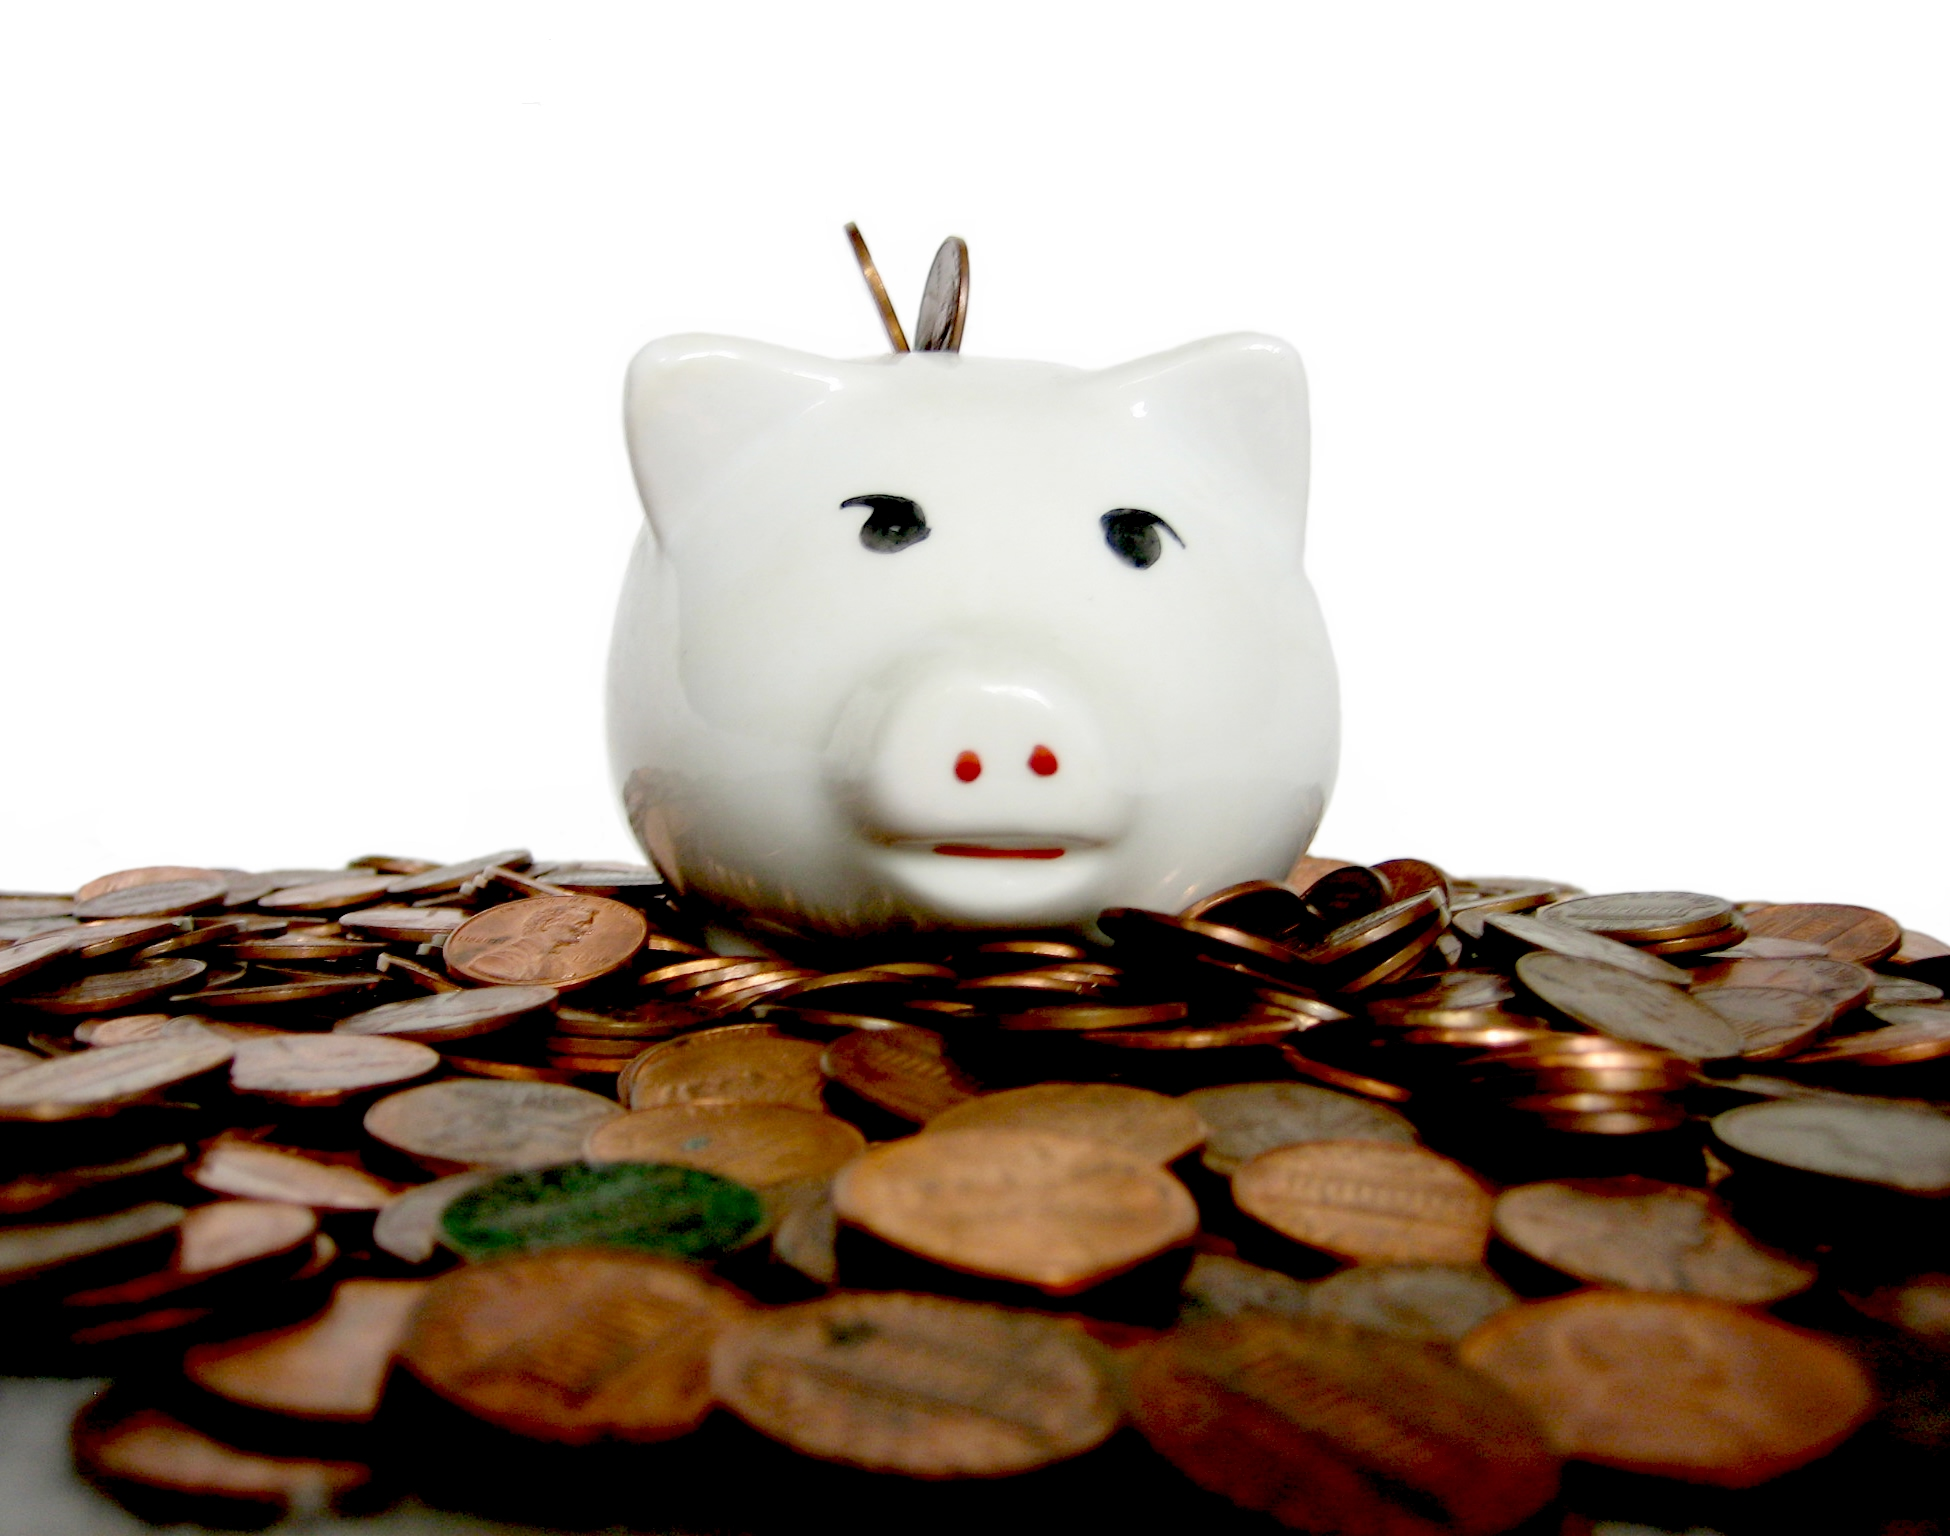 Make a real change in the New Year, hack your personal finances and take charge with these tips!